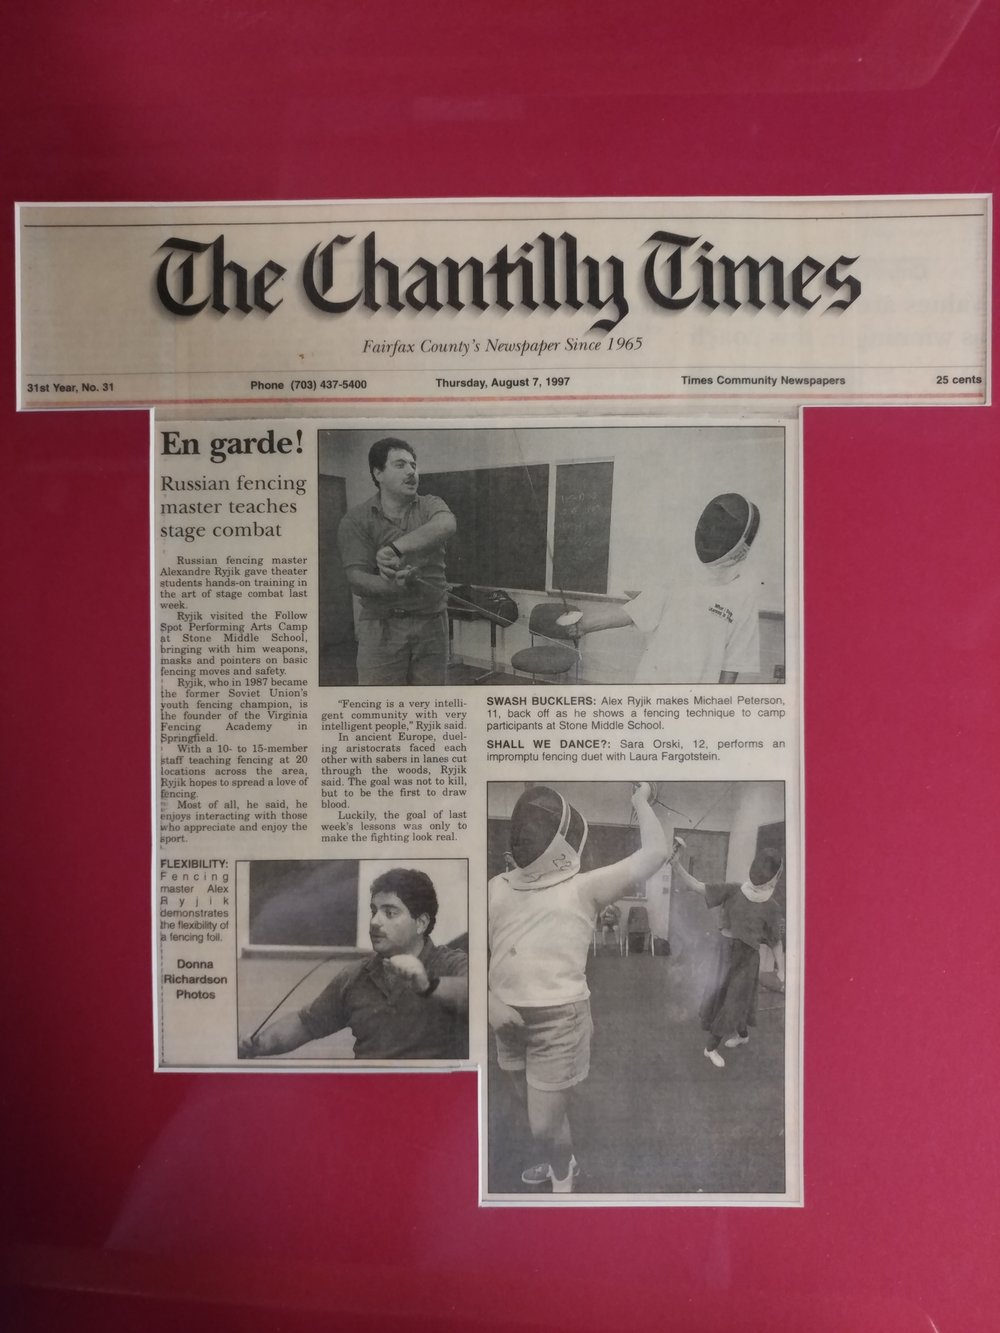 The Chantilly Times